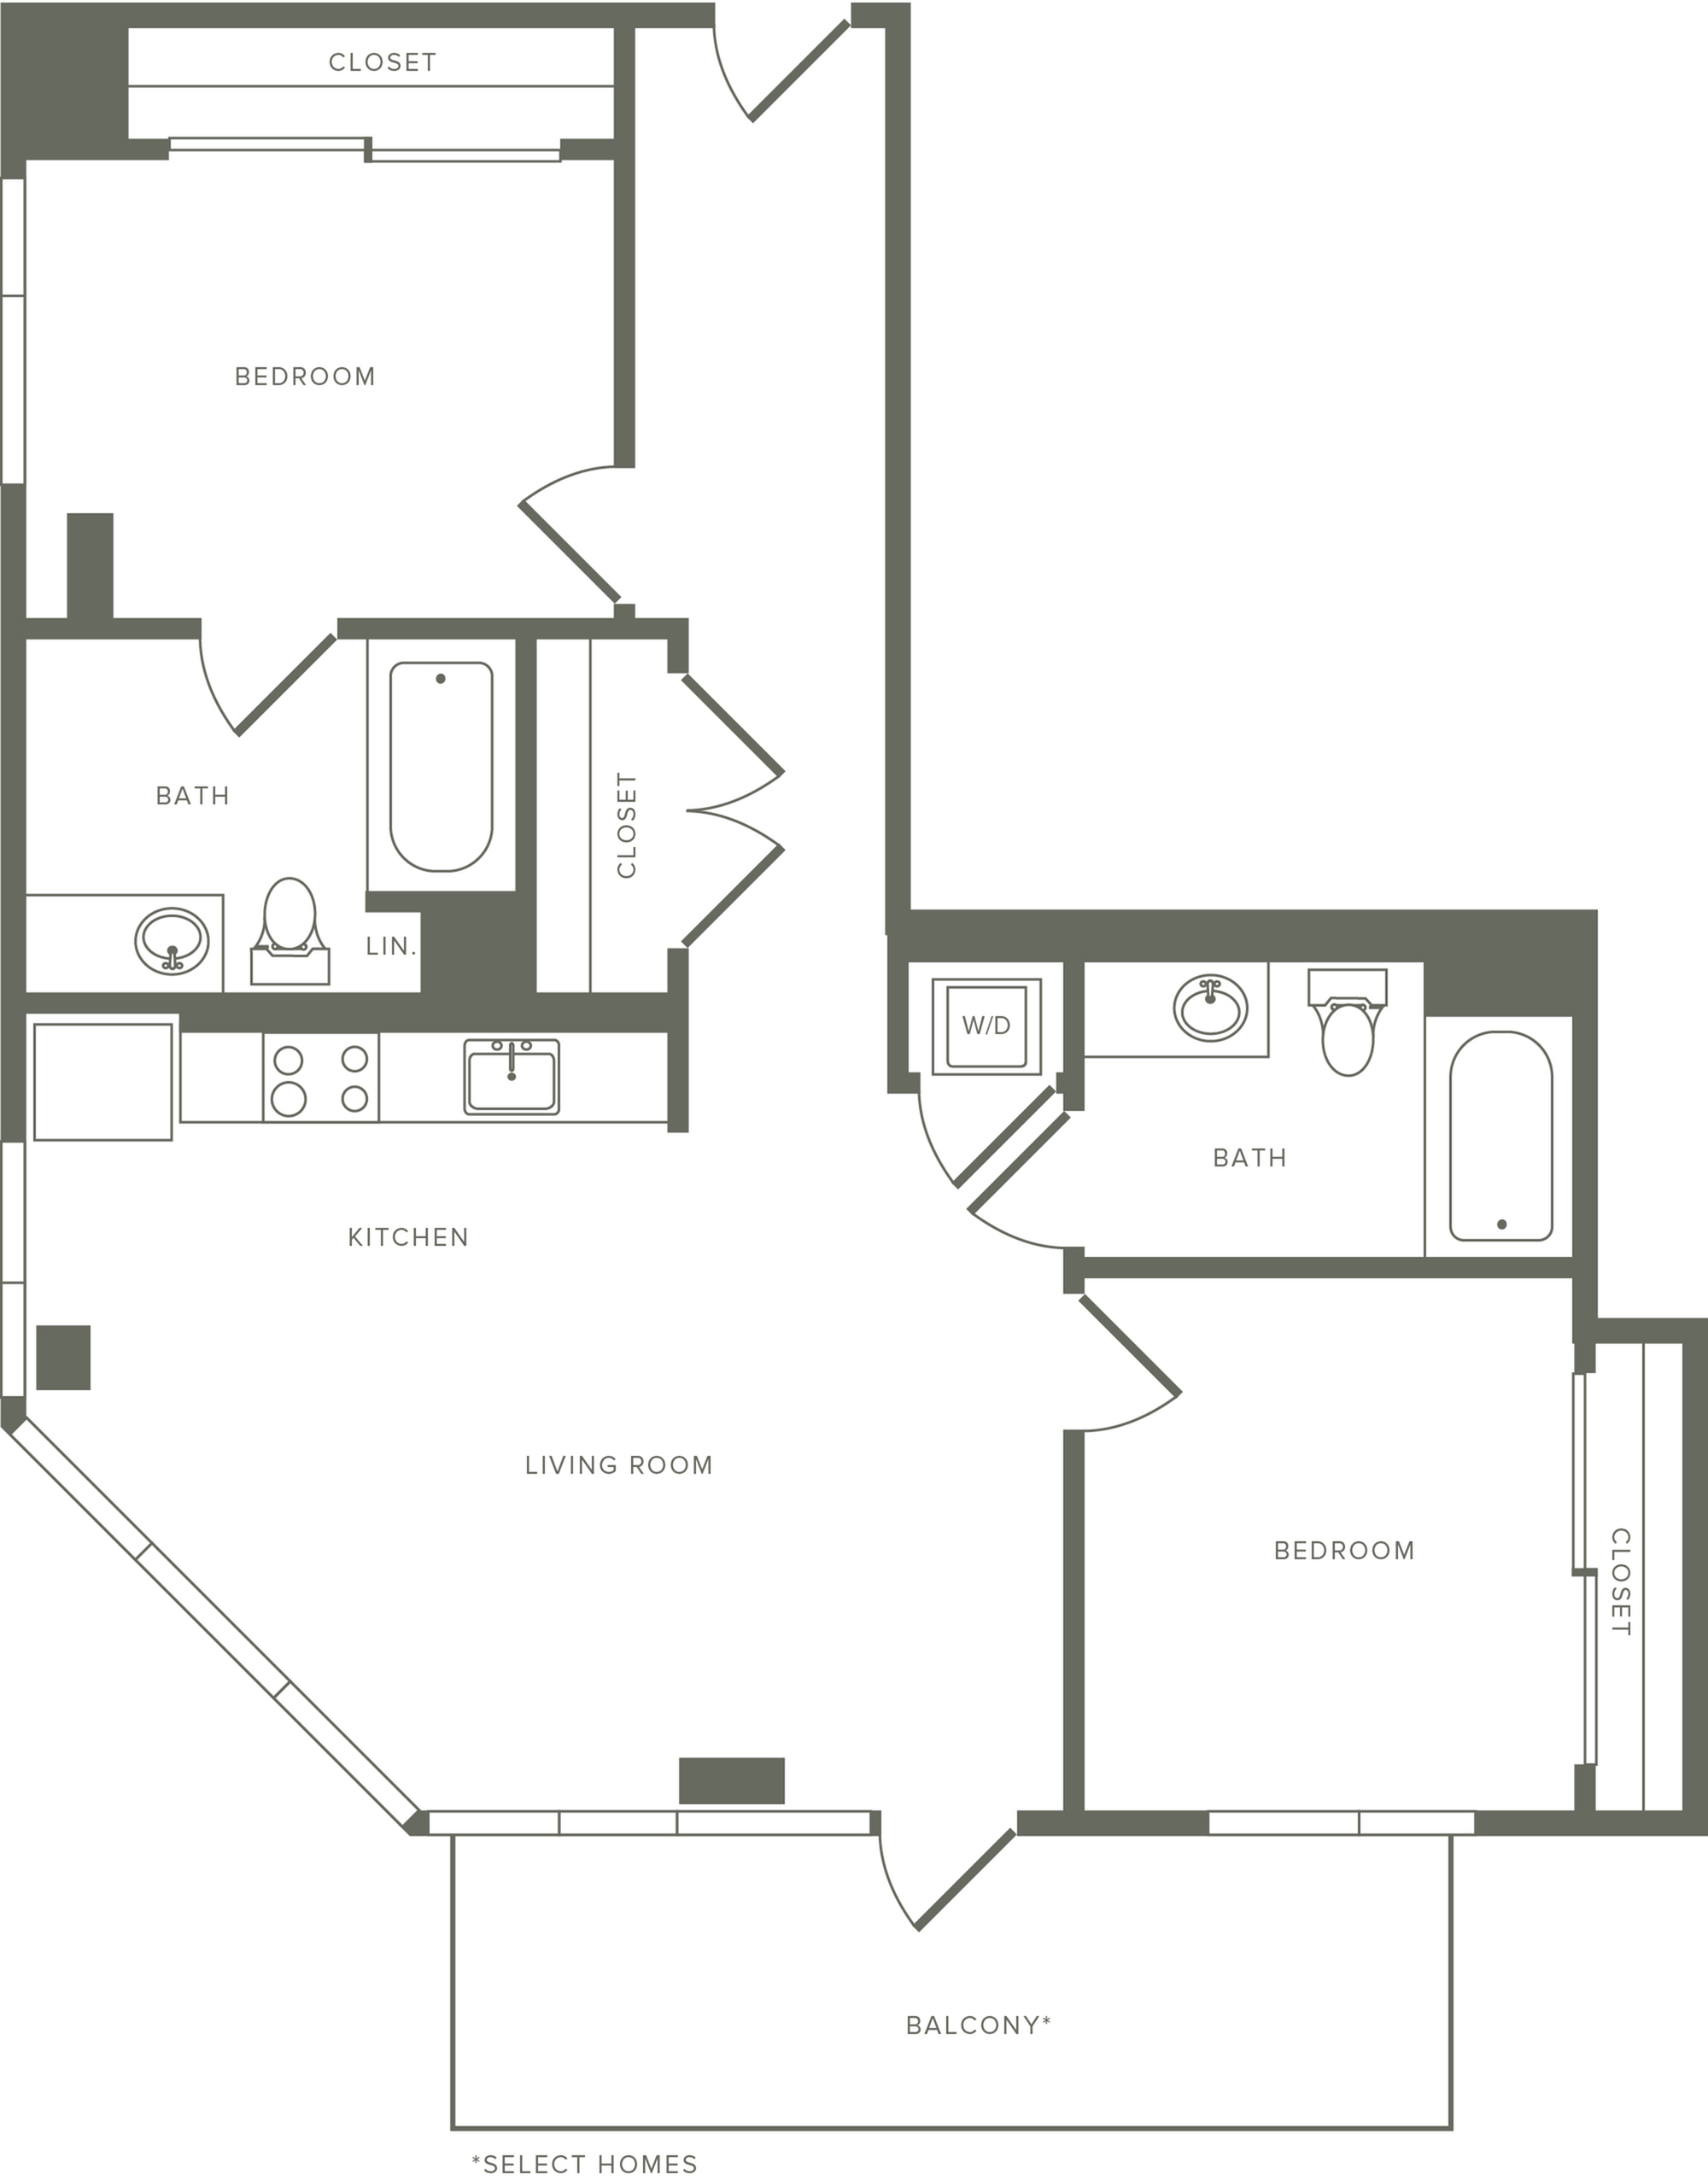 1,007-1,011 square foot two bedroom two bath apartment floorplan image